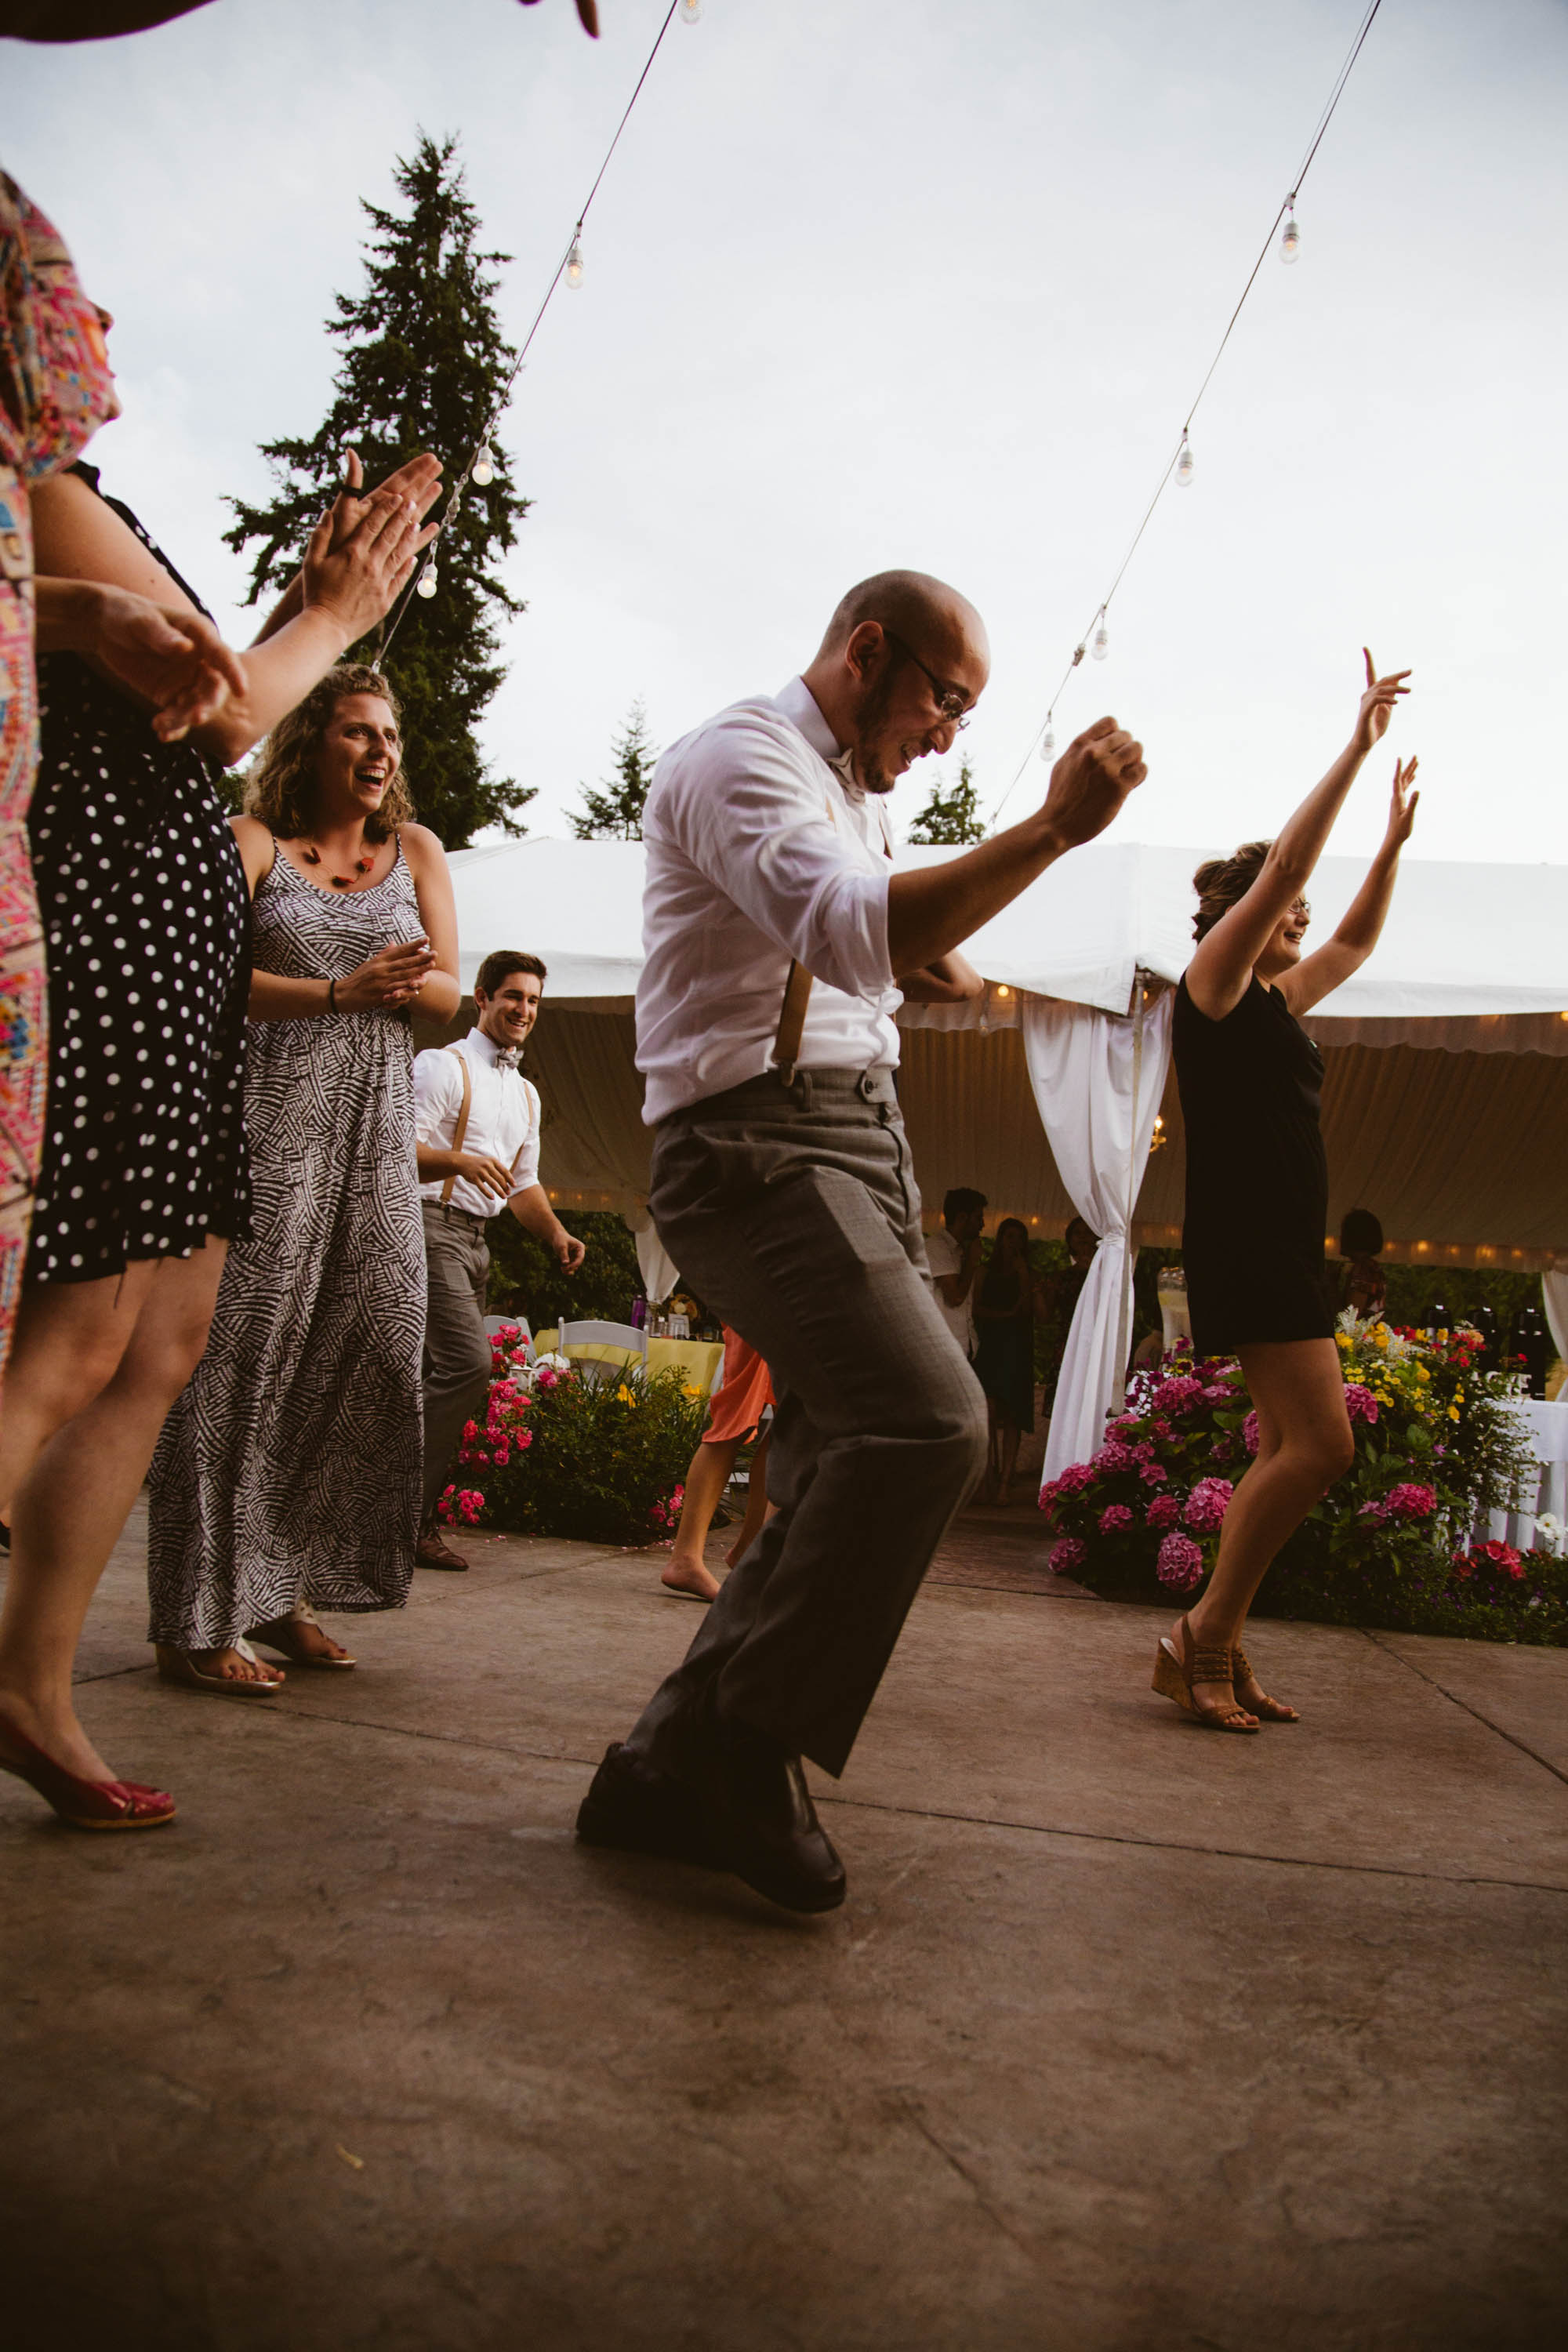 This wedding was a dance party!